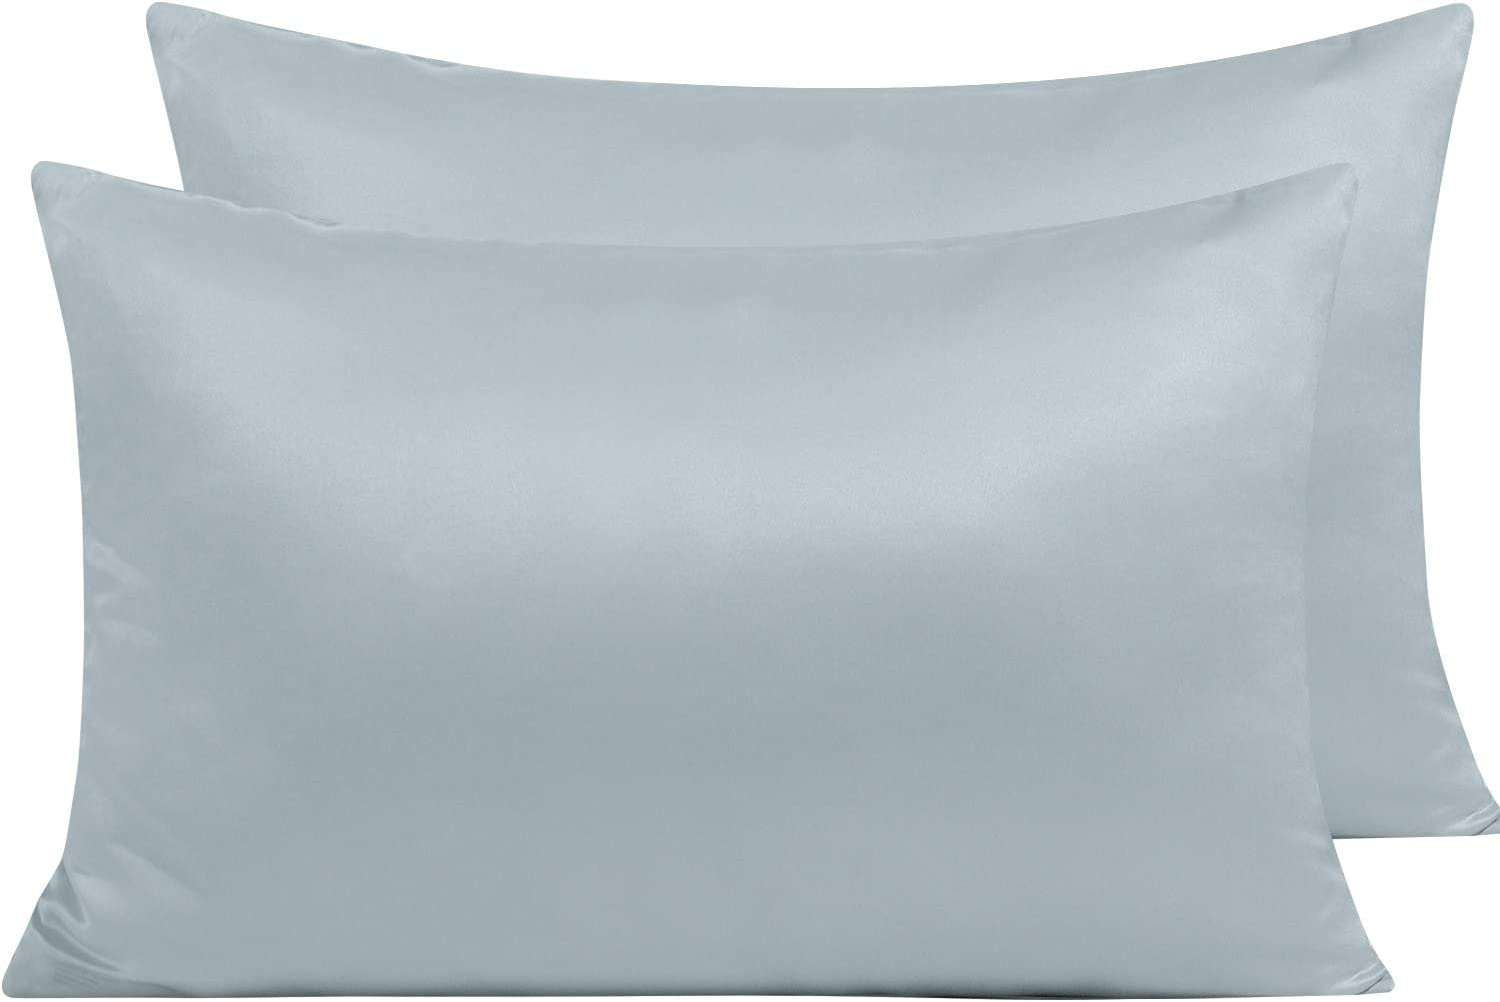 NTBAY Zippered Satin Pillow Cases for Hair and Skin, Luxury Queen Hidden Zipper Pillowcases Set of 2, 20 x 30 Inches, Grey